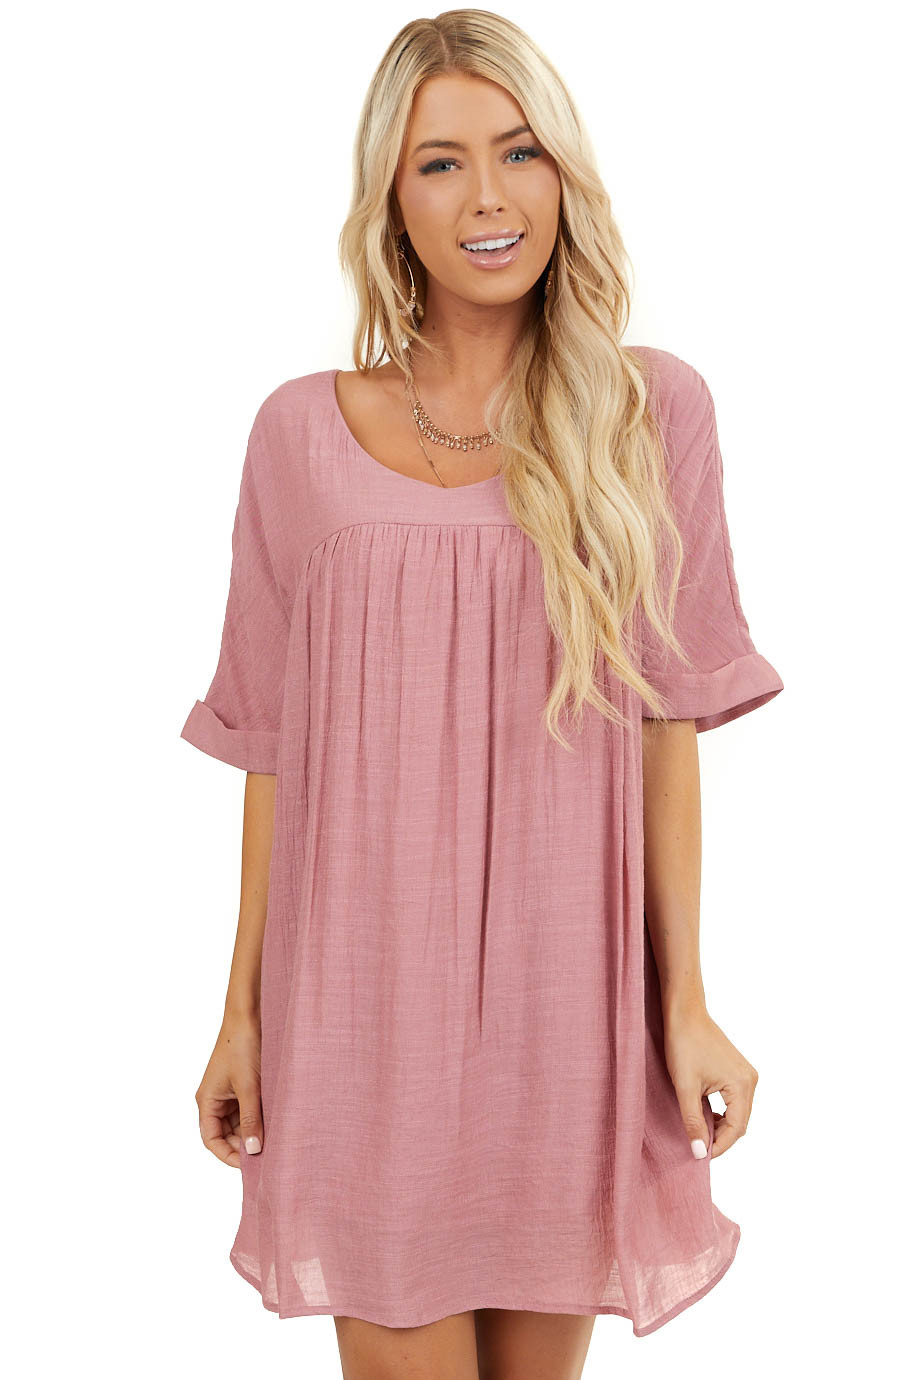 Dusty Blush V Neck Mini Dress with Short Cuffed Sleeves